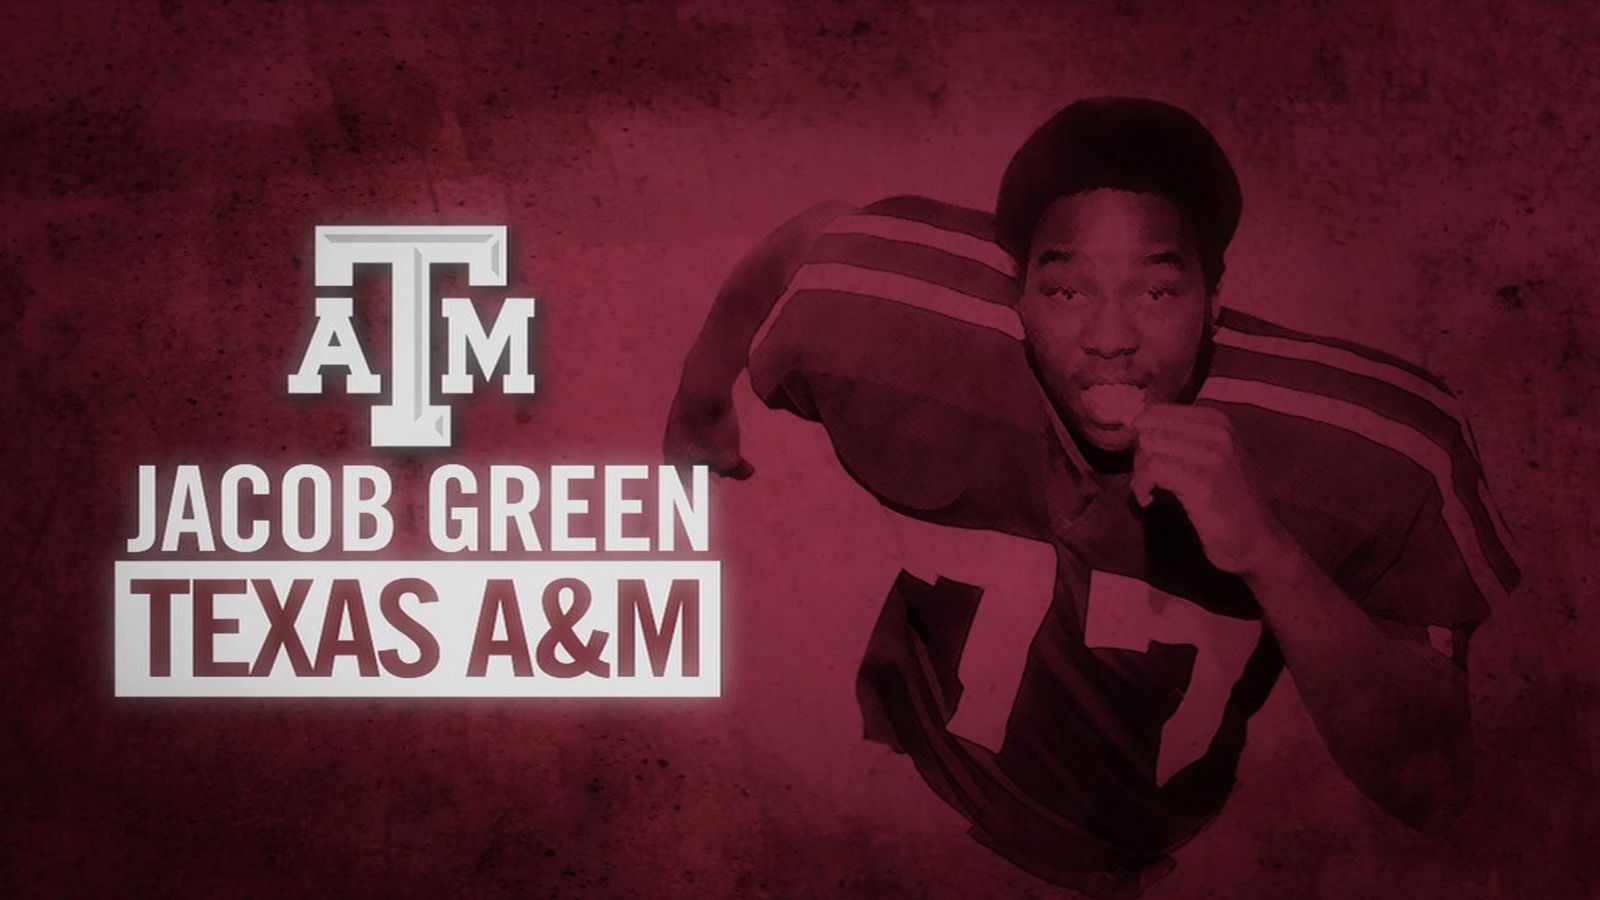 SEC celebrates Black History Month: Texas A&M